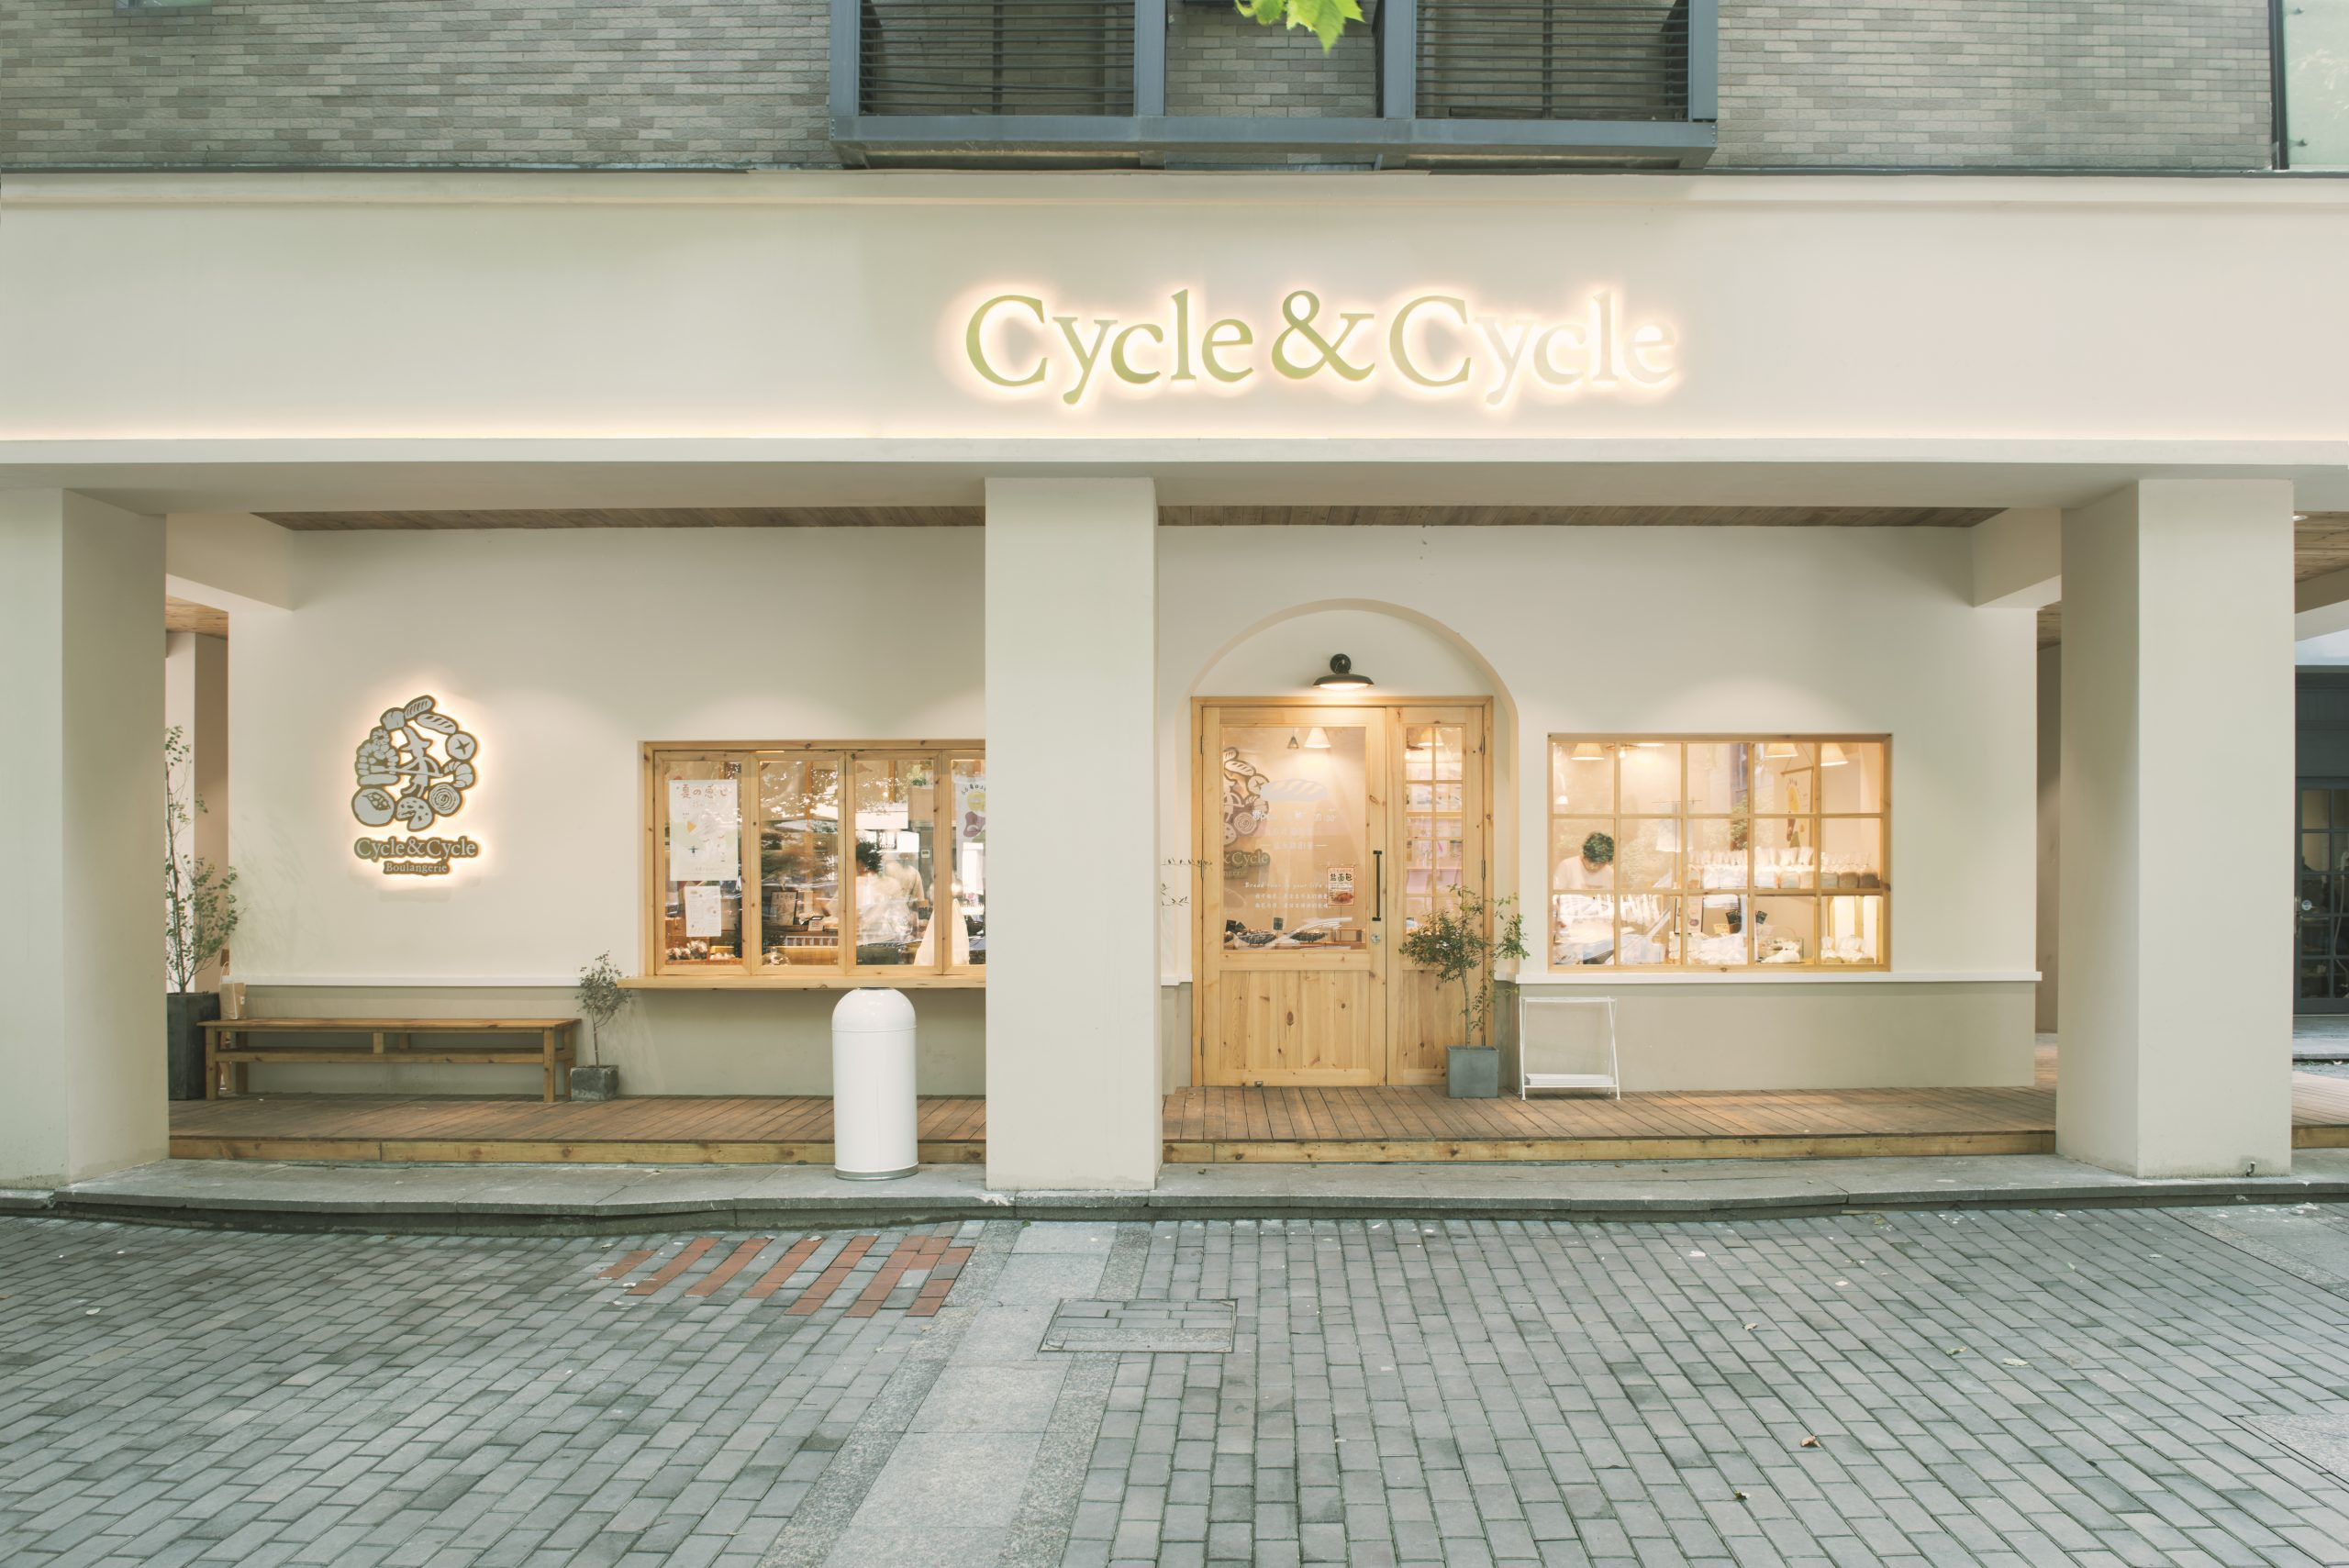 Cycle&Cycle(益乐路)